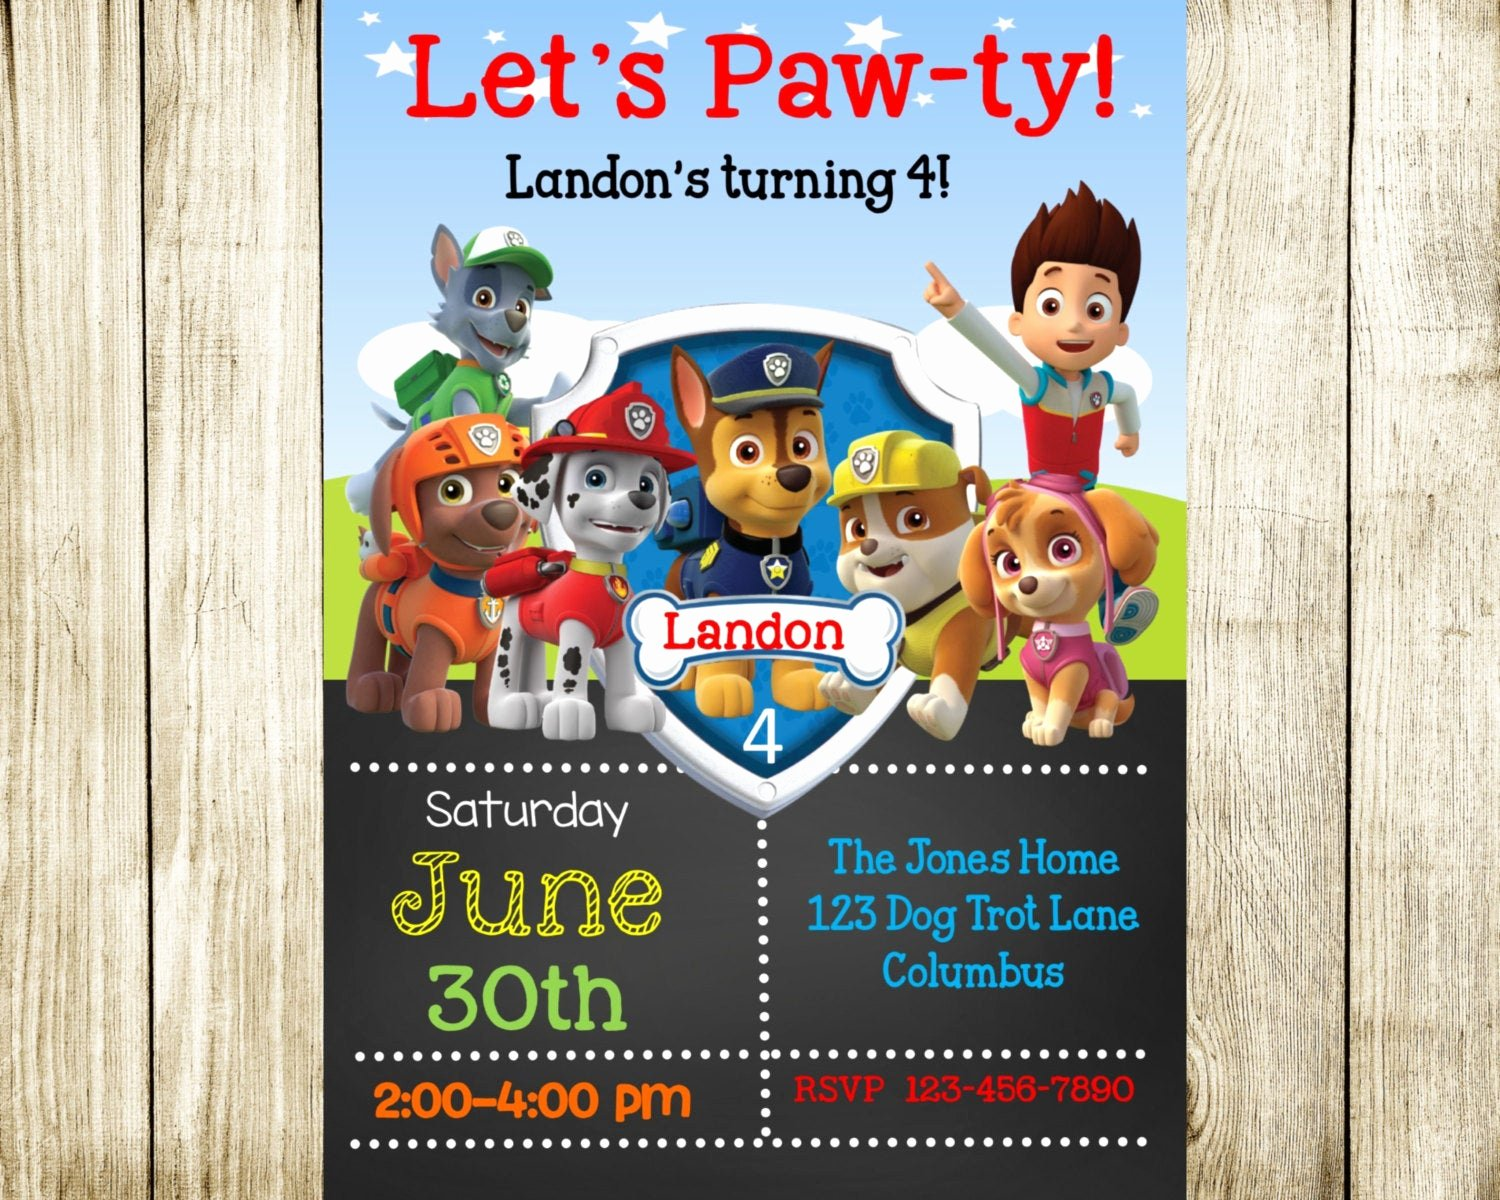 Paw Patrol Invitation Template Free Awesome Paw Patrol Birthday Paw Patrol Invitation by Needmoredesigns